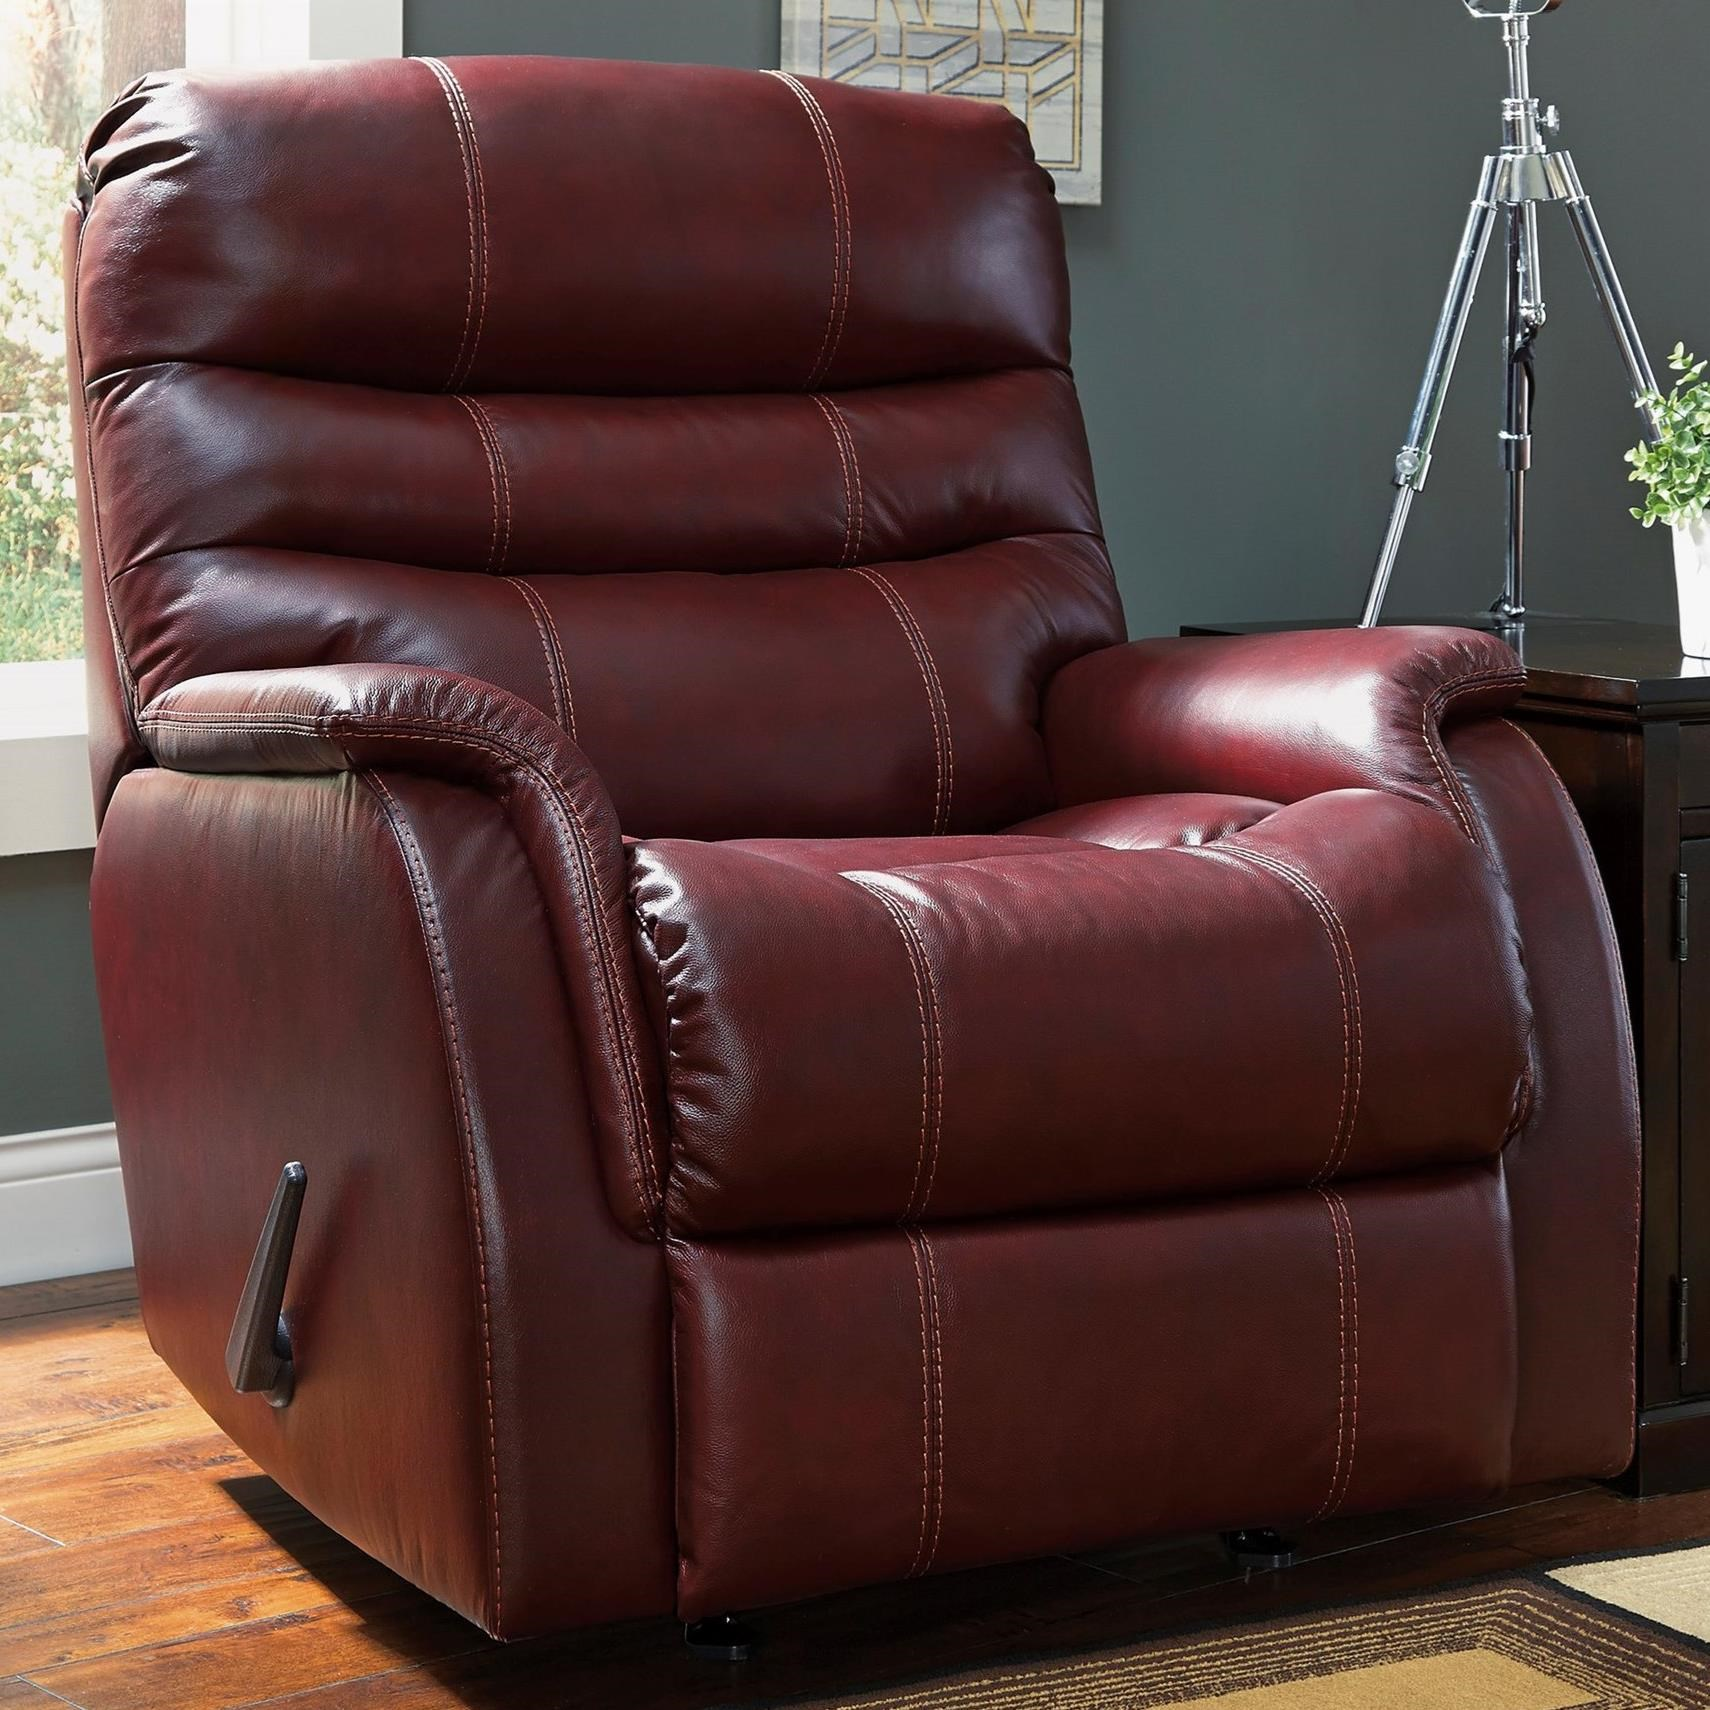 Signature Design by Ashley Bridger Rocker Recliner - Item Number: 3930125